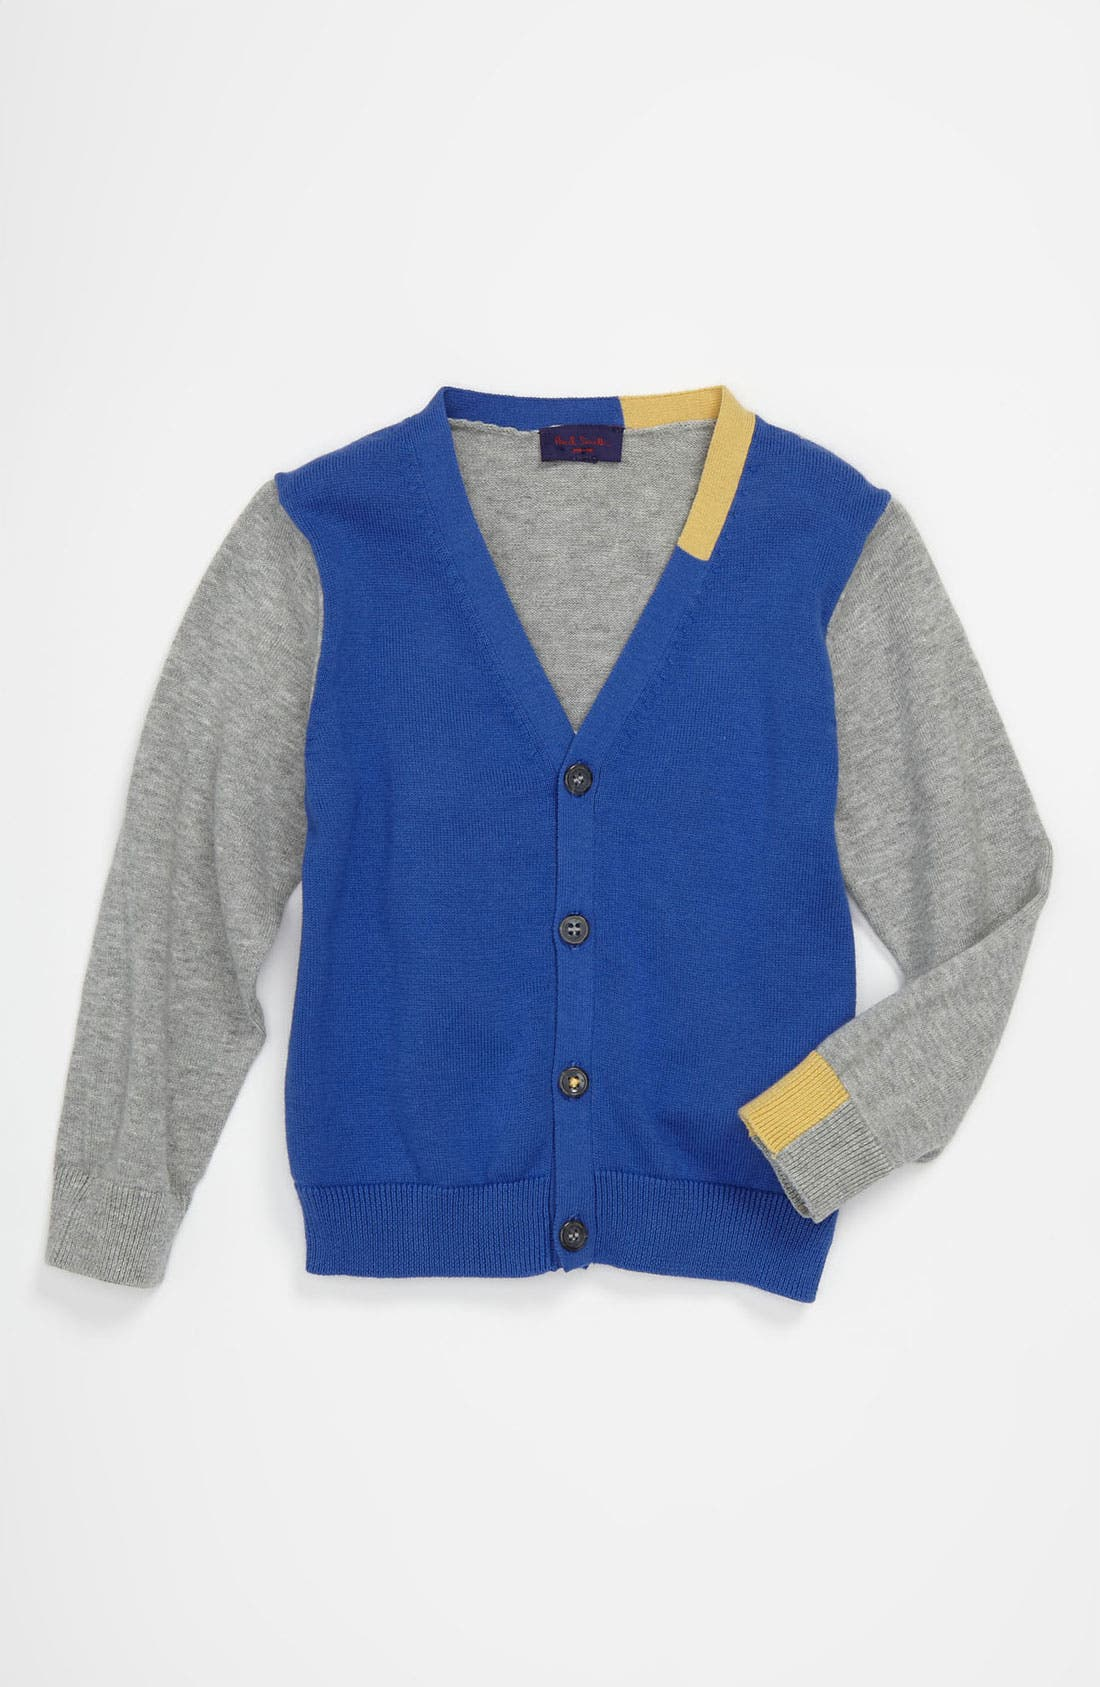 Main Image - Paul Smith Junior Cardigan (Baby & Toddler)